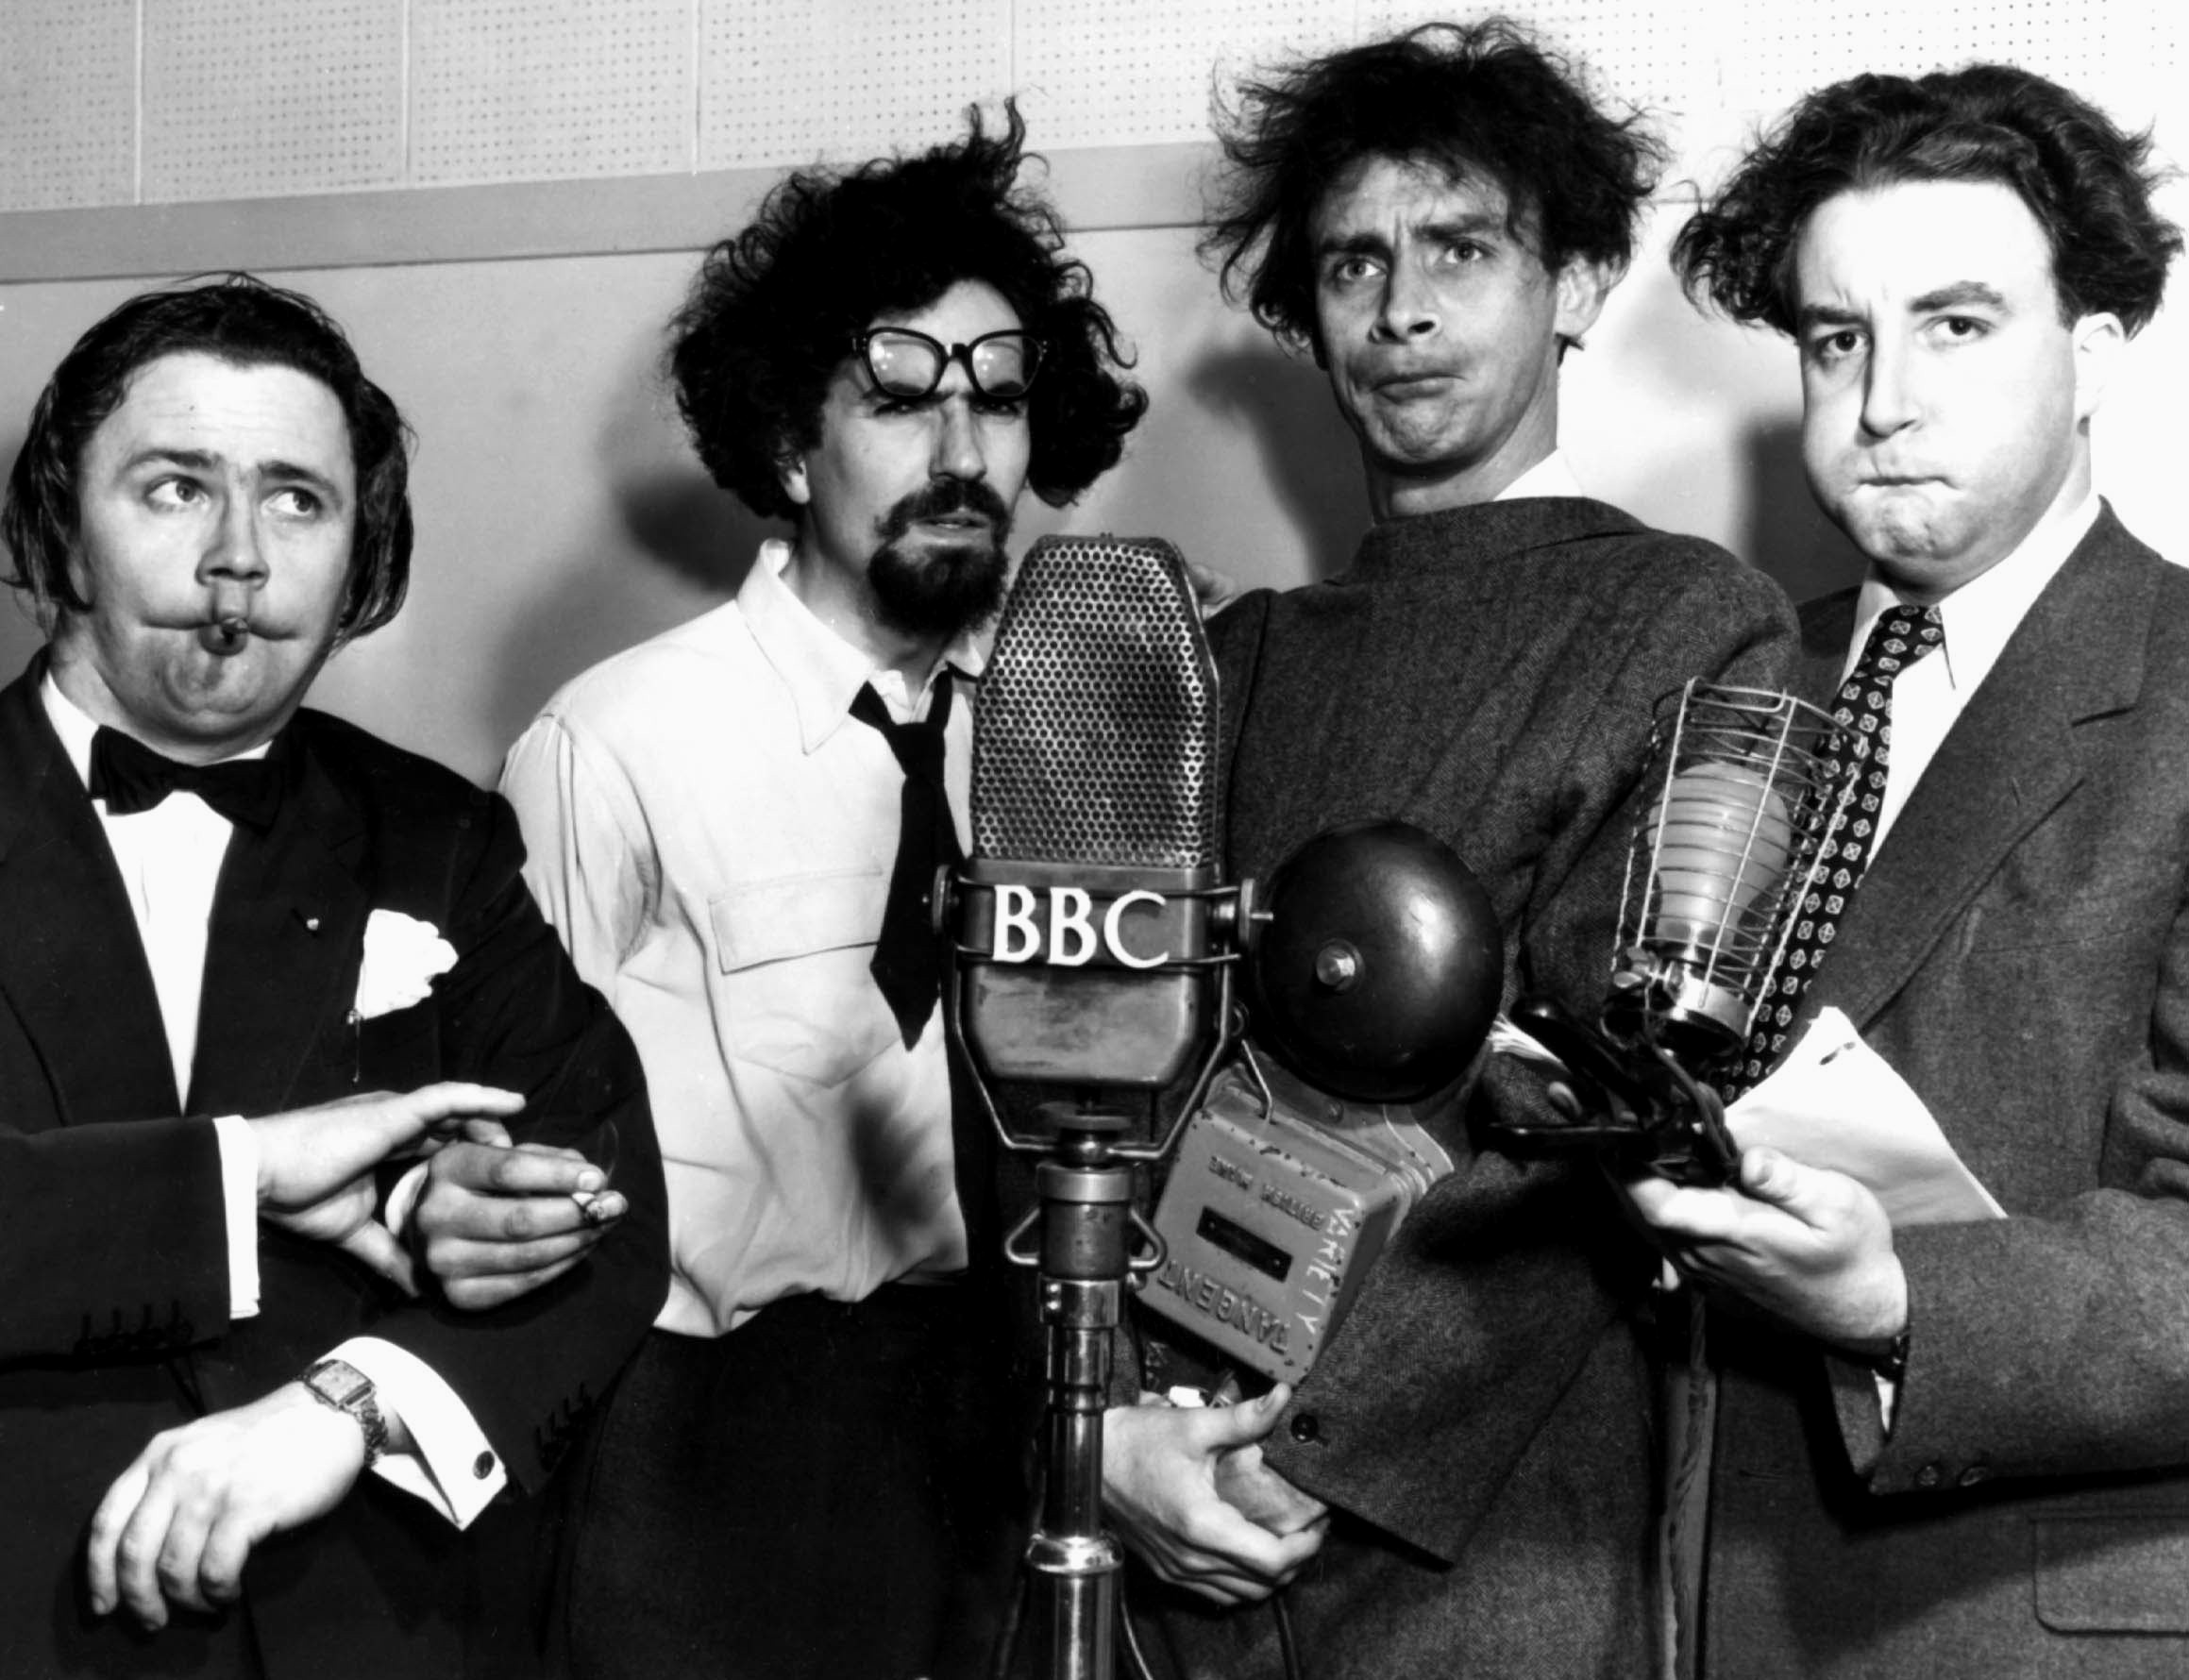 Harry Secombe, Michael Bentine, Spike Milligan and Peter Sellars in the Goon Show.